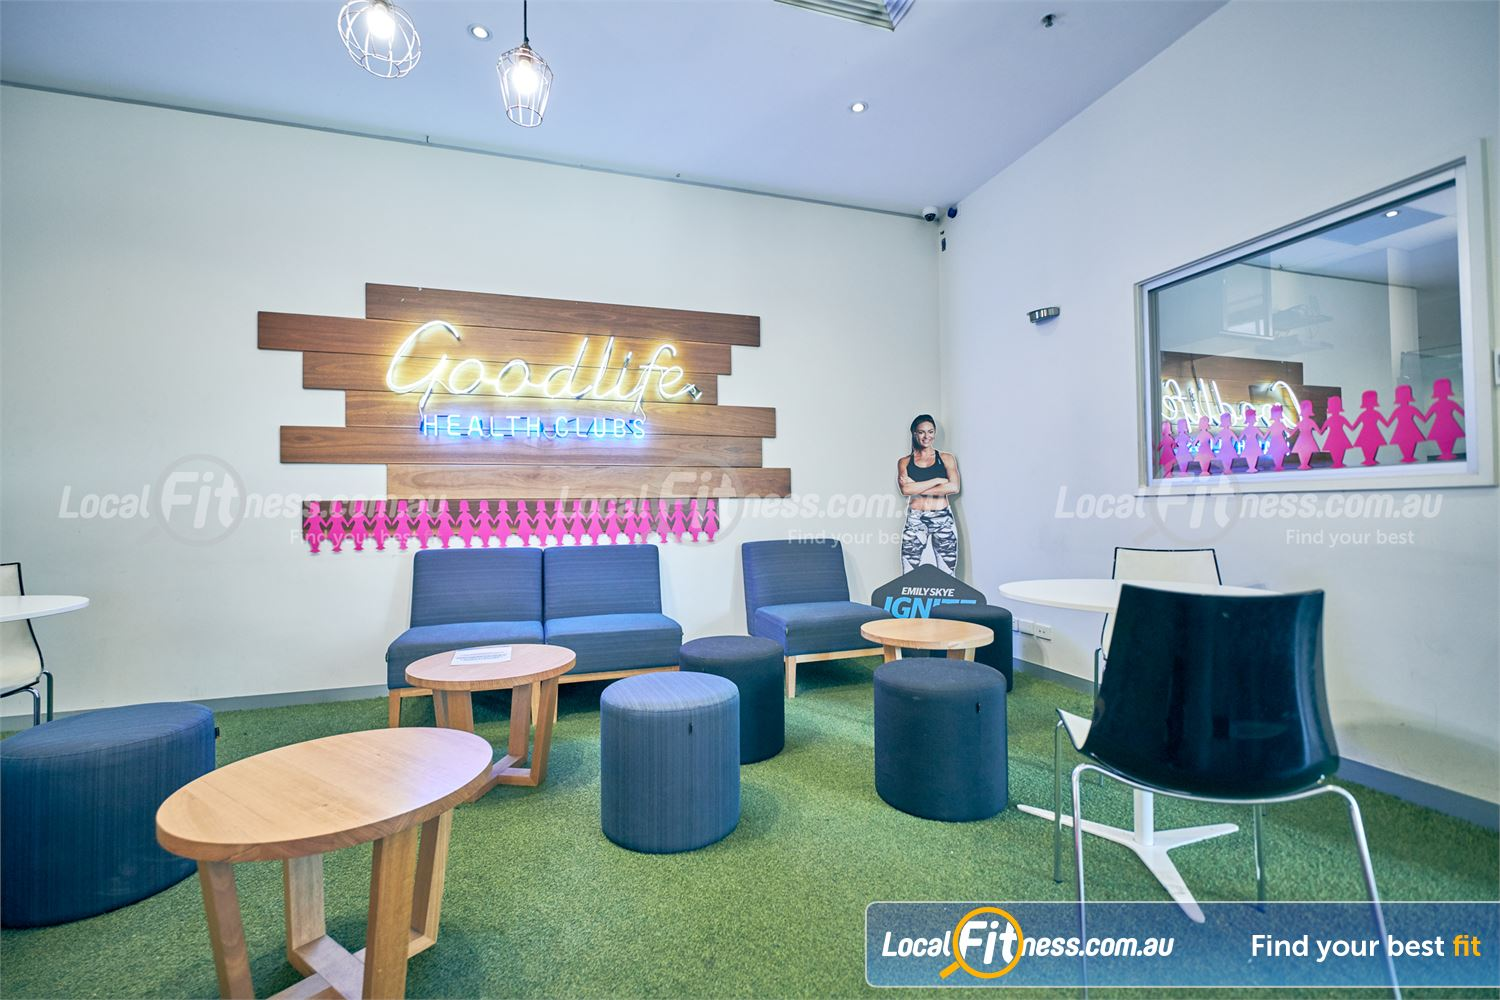 Goodlife Health Clubs Near Windsor The relaxing members lounge area.